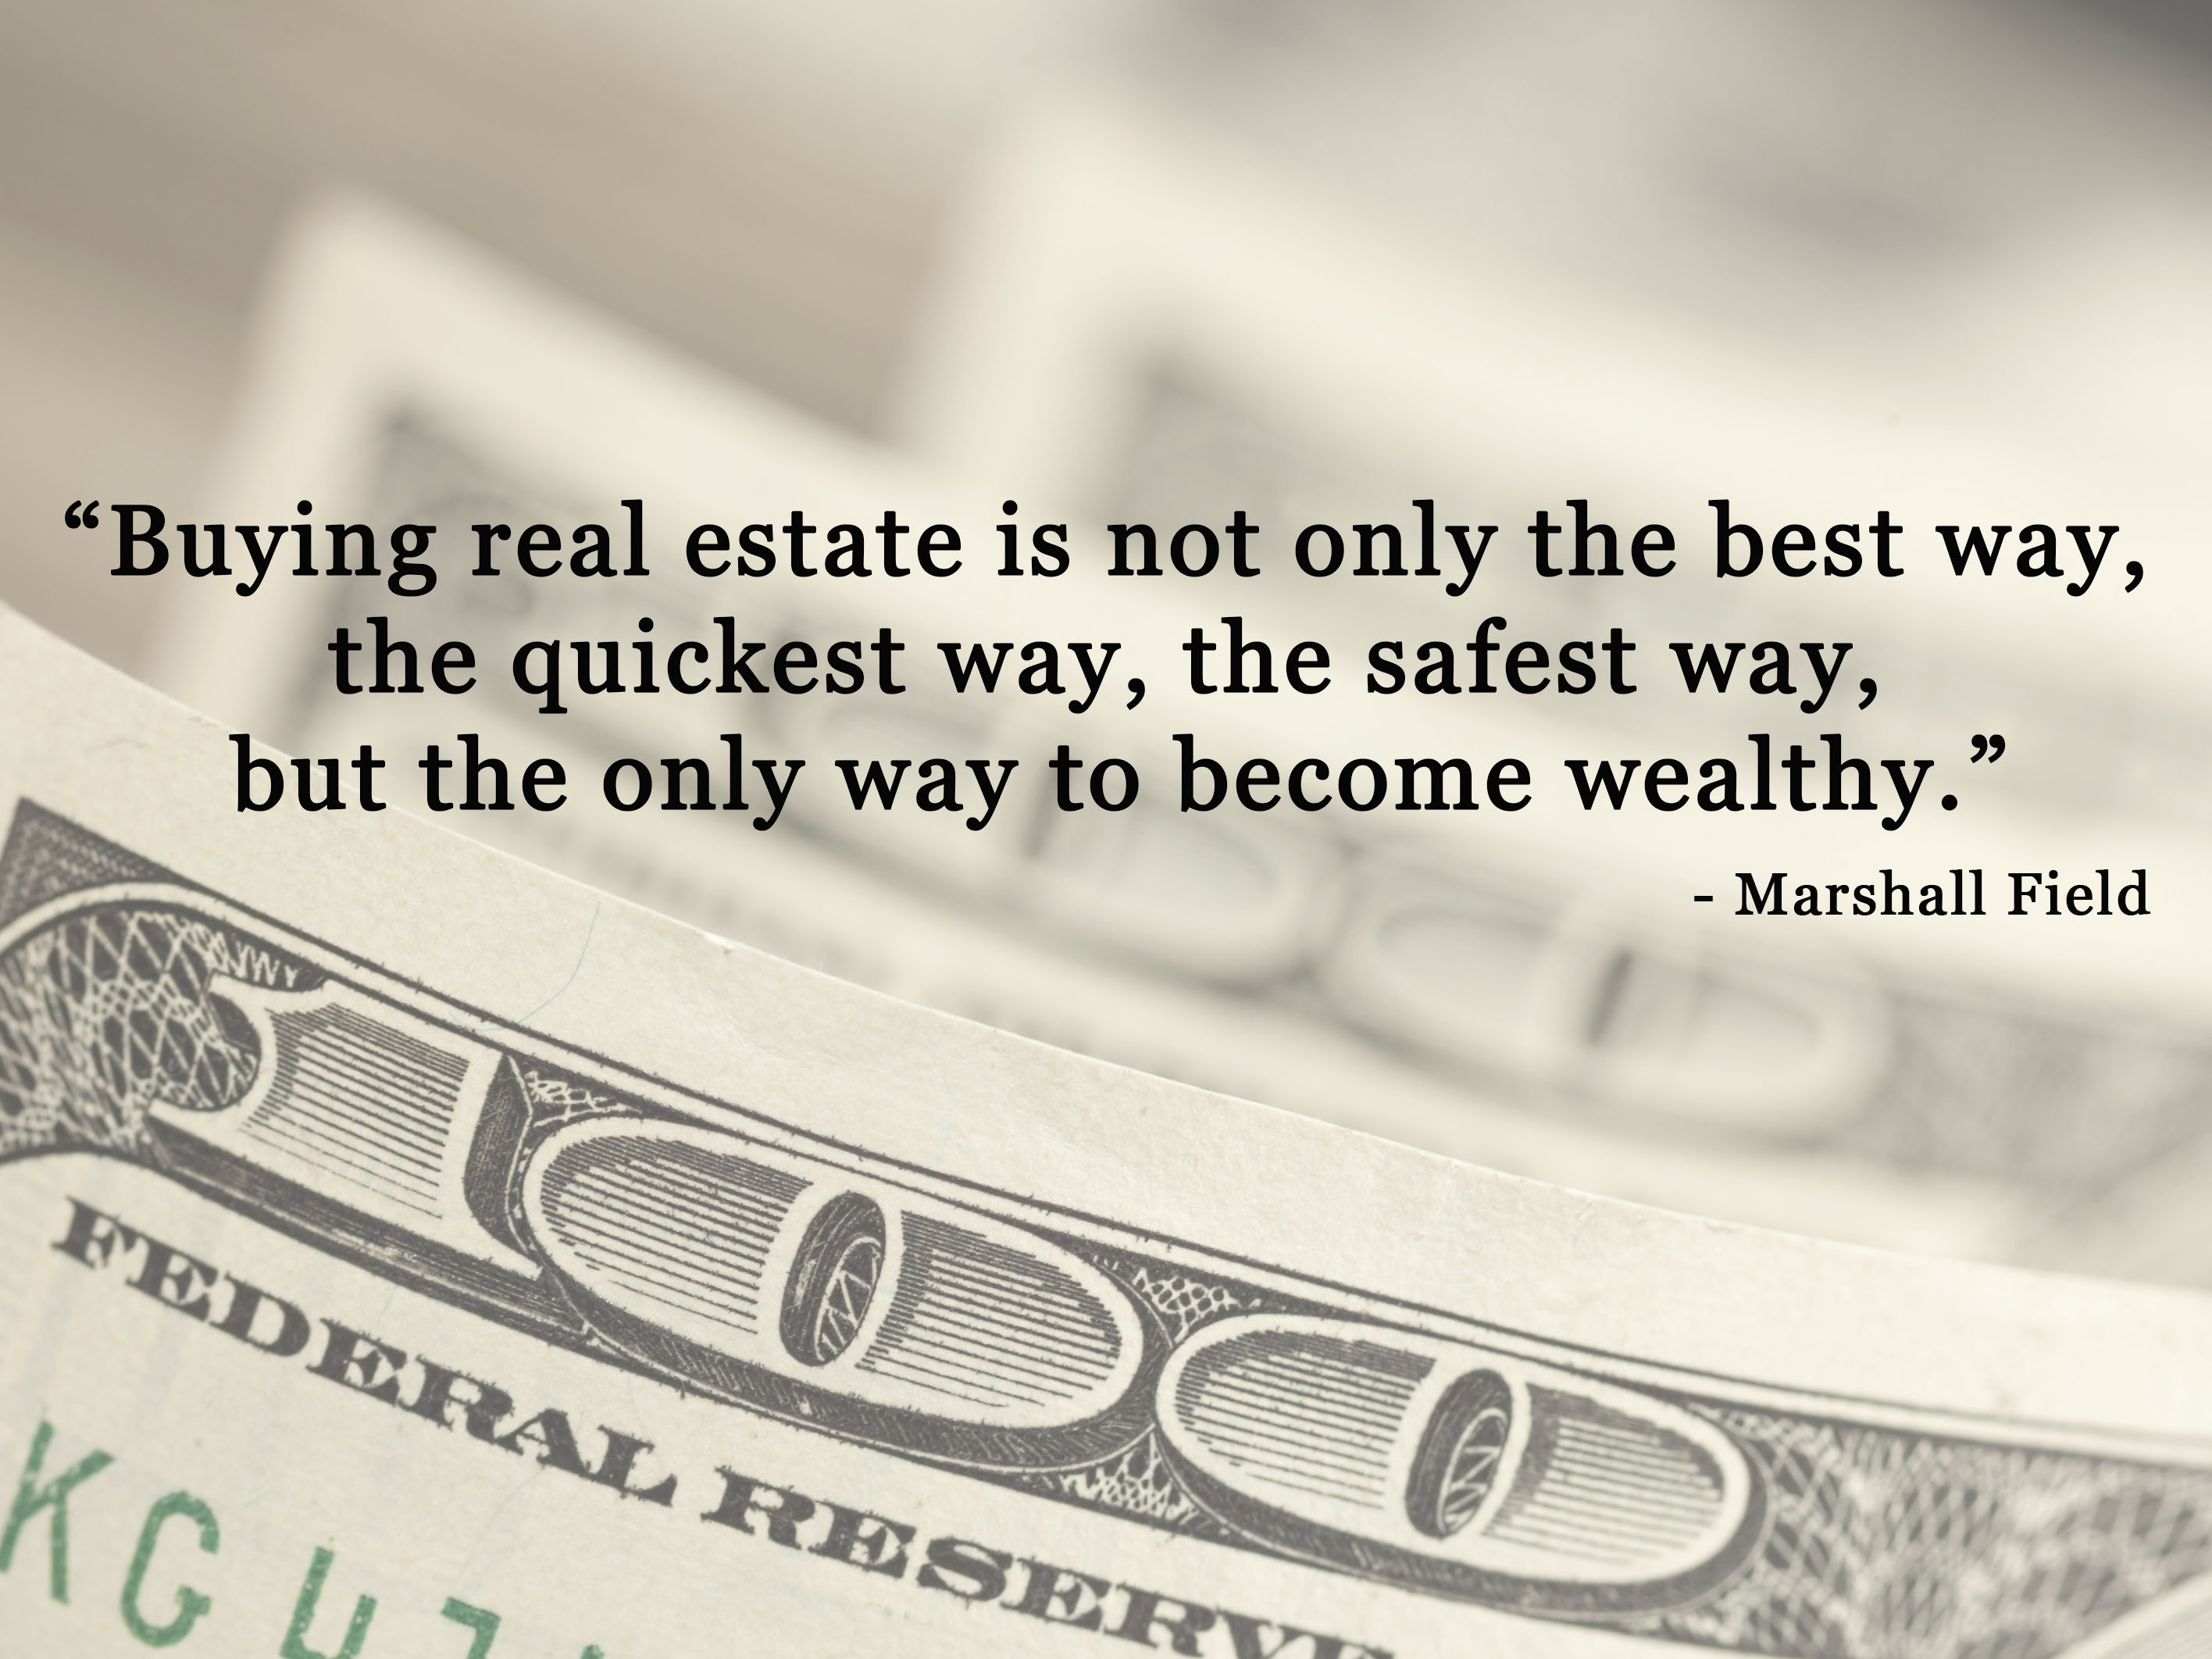 buying real estate is the only way to become wealthy. 4 real estate investing options. Passive income in egypt.